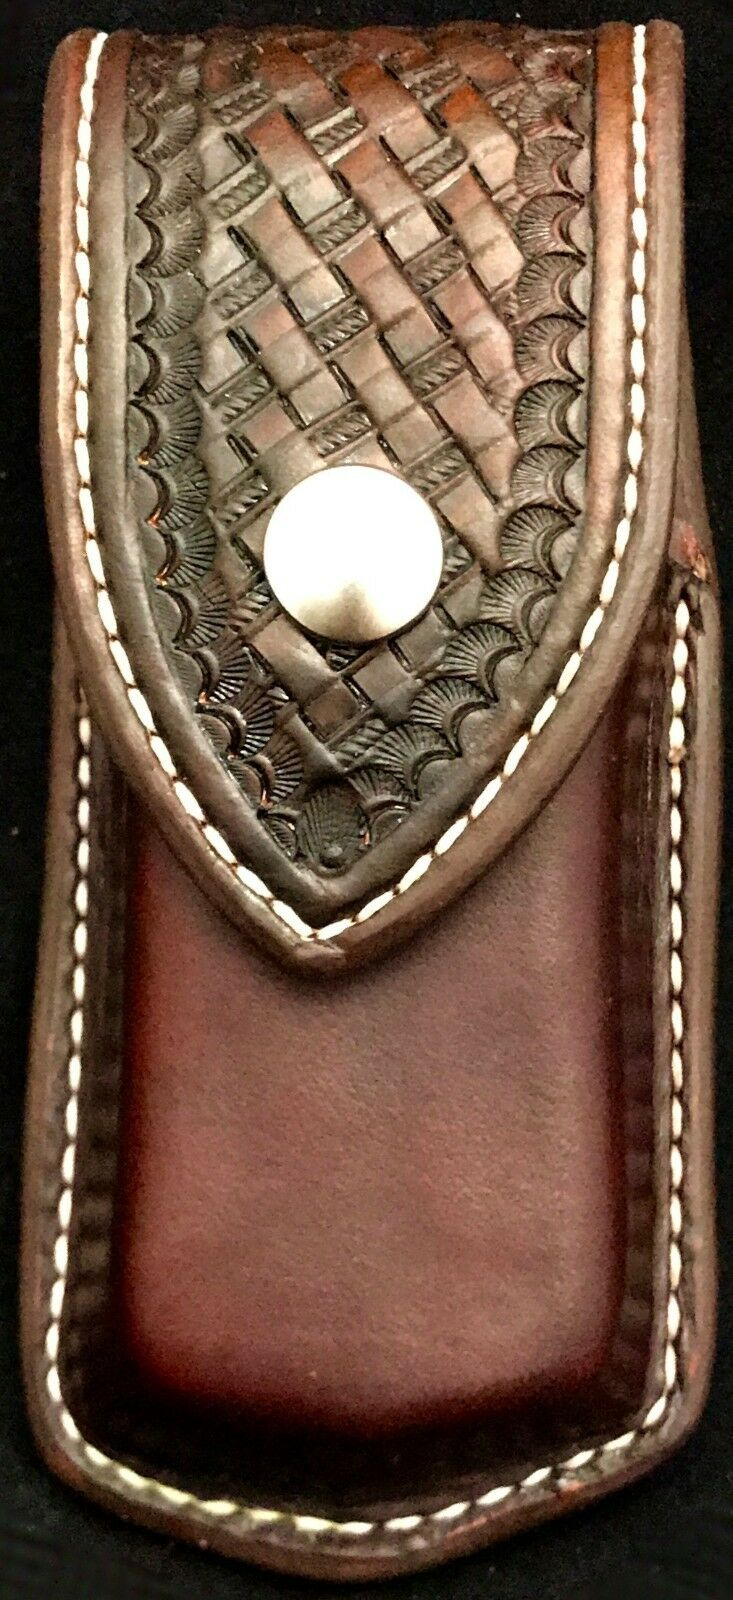 Custom Leder Deluxe Sheath New OHT Lederman Saddle Leder New Sheath Form Fit 18f6d1